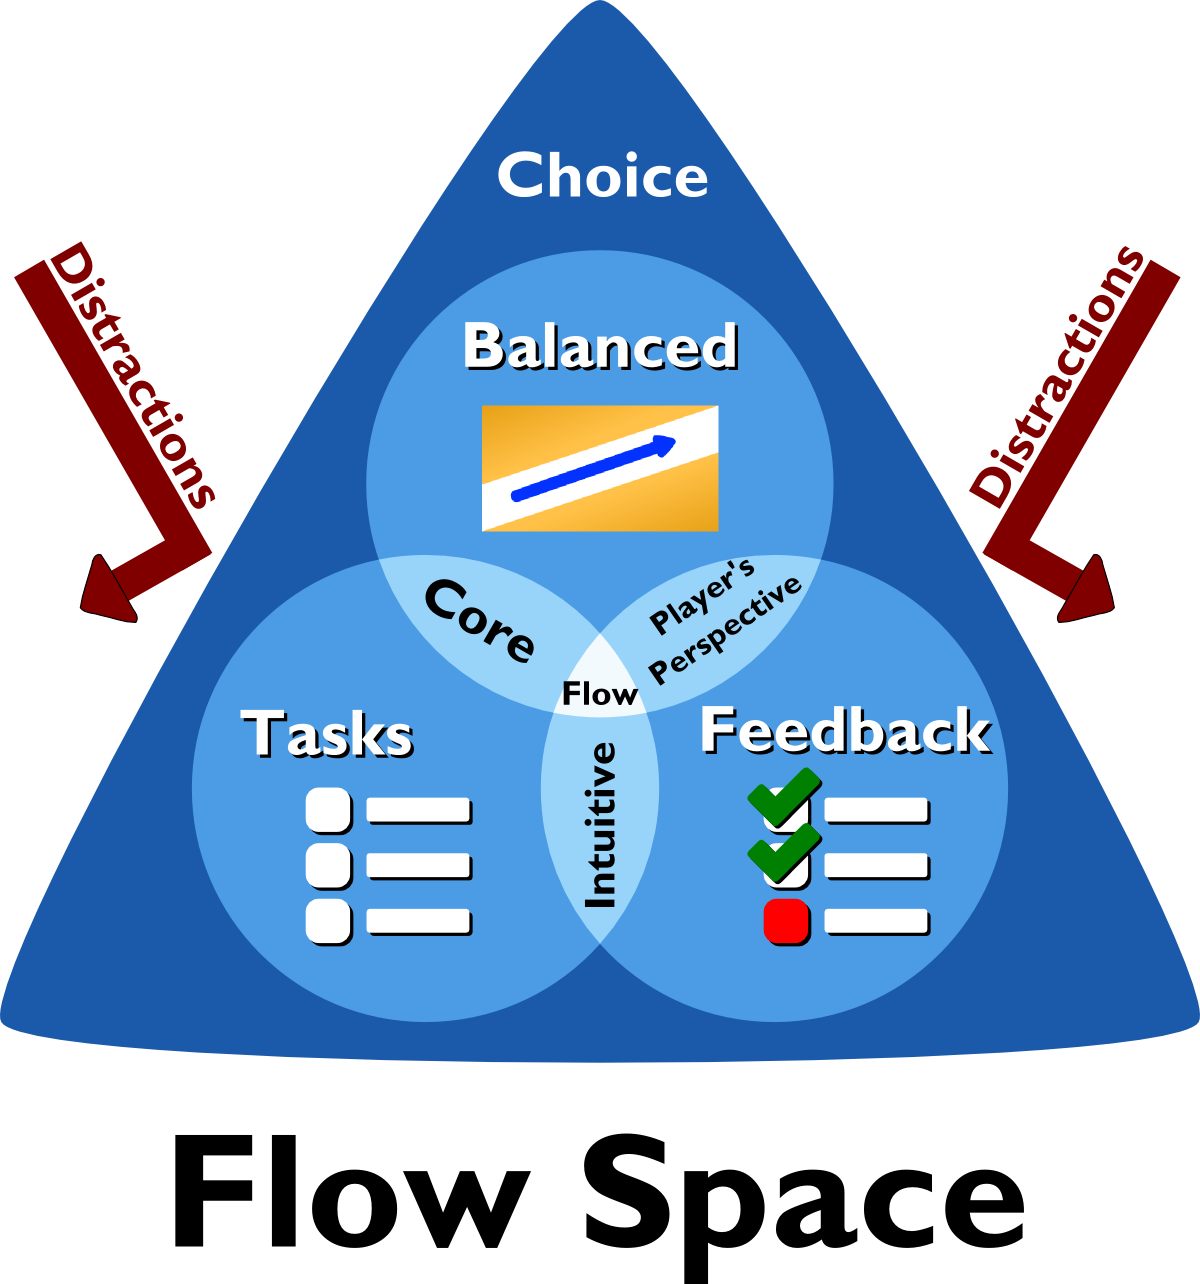 Flow Space - A Visual Guide for Flow and Simplicity in Games